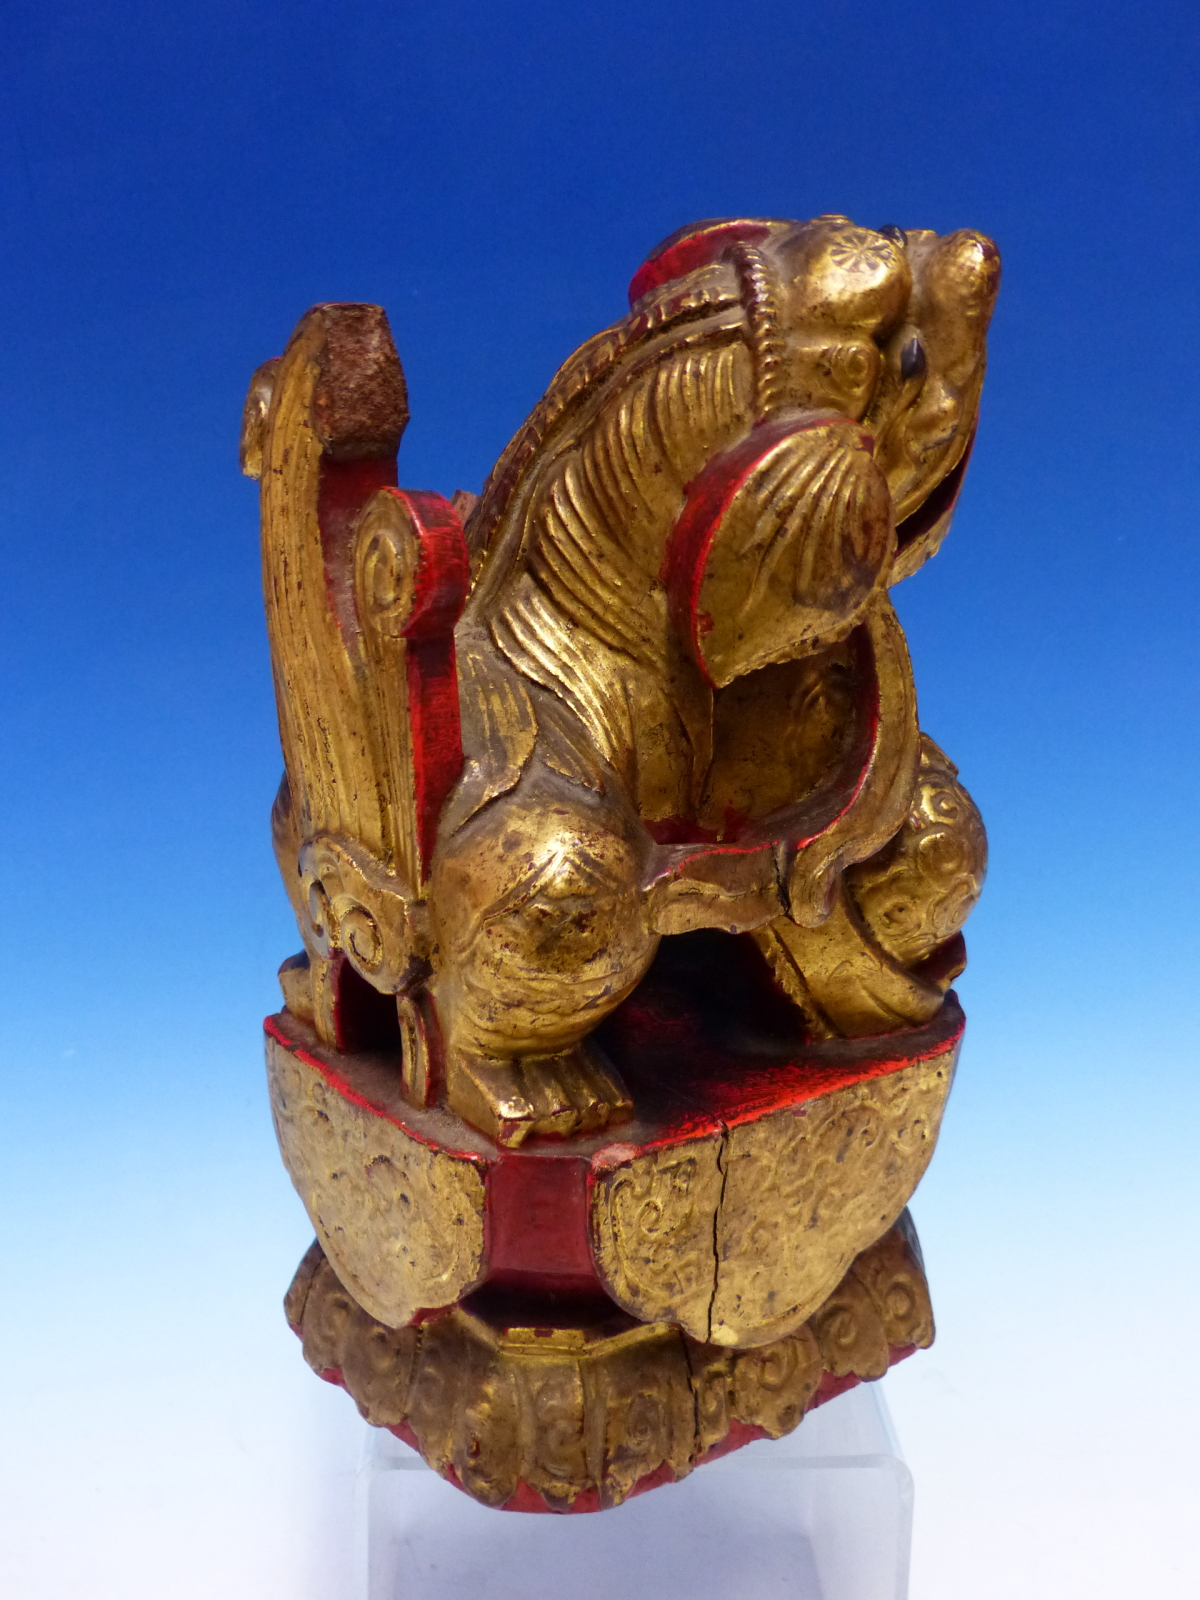 A CHINESE CARVED WOOD LION SEATED WITH A BROCADE BALL PARCEL GILT ON A RED LACQUER GROUND. H 23cms. - Image 2 of 5